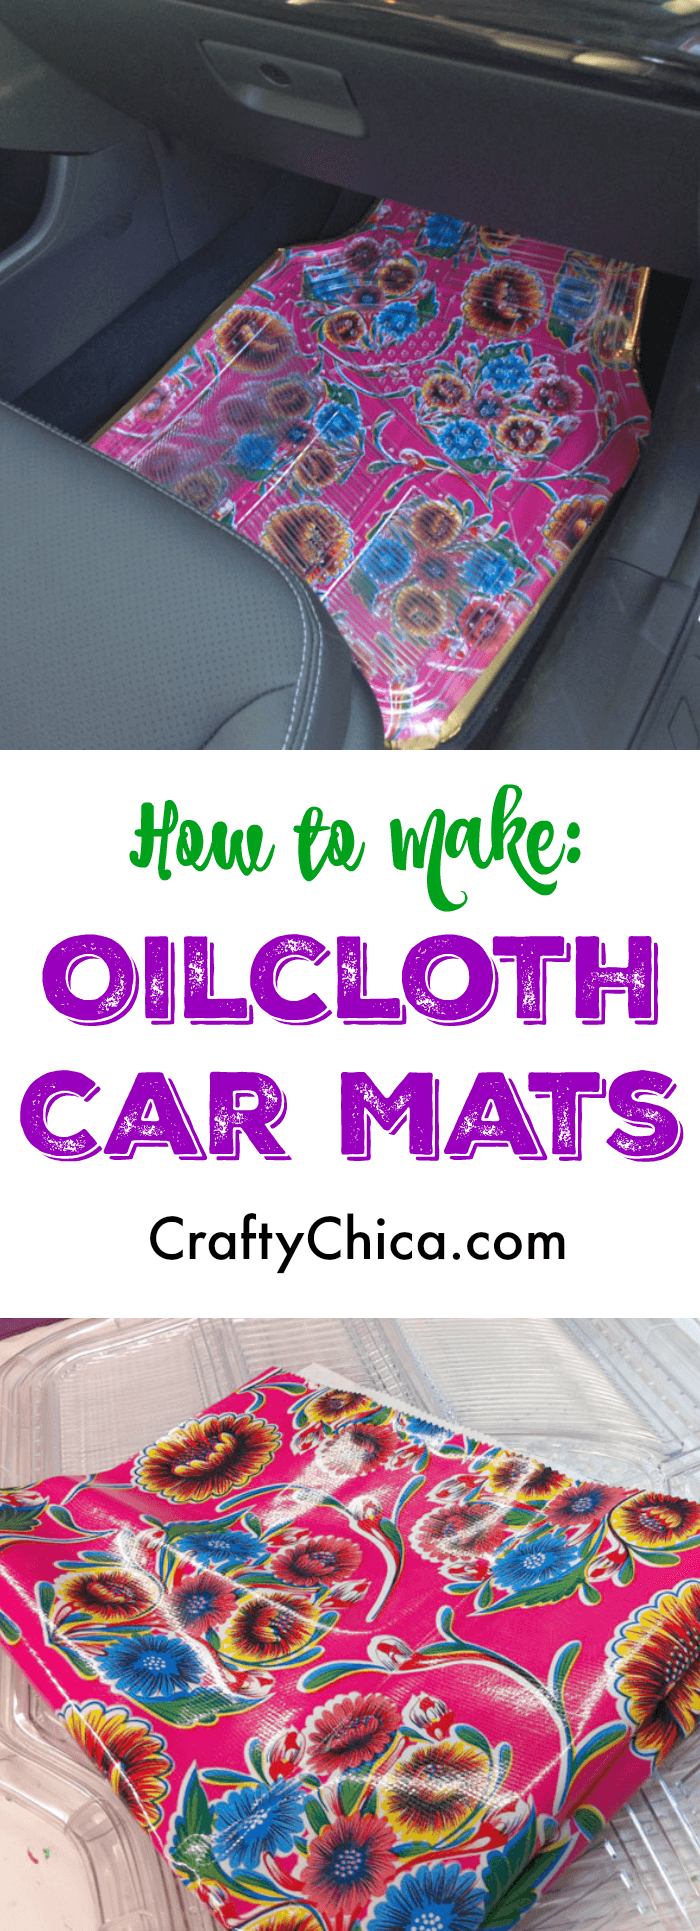 Make oilcloth car mats by Crafty Chica